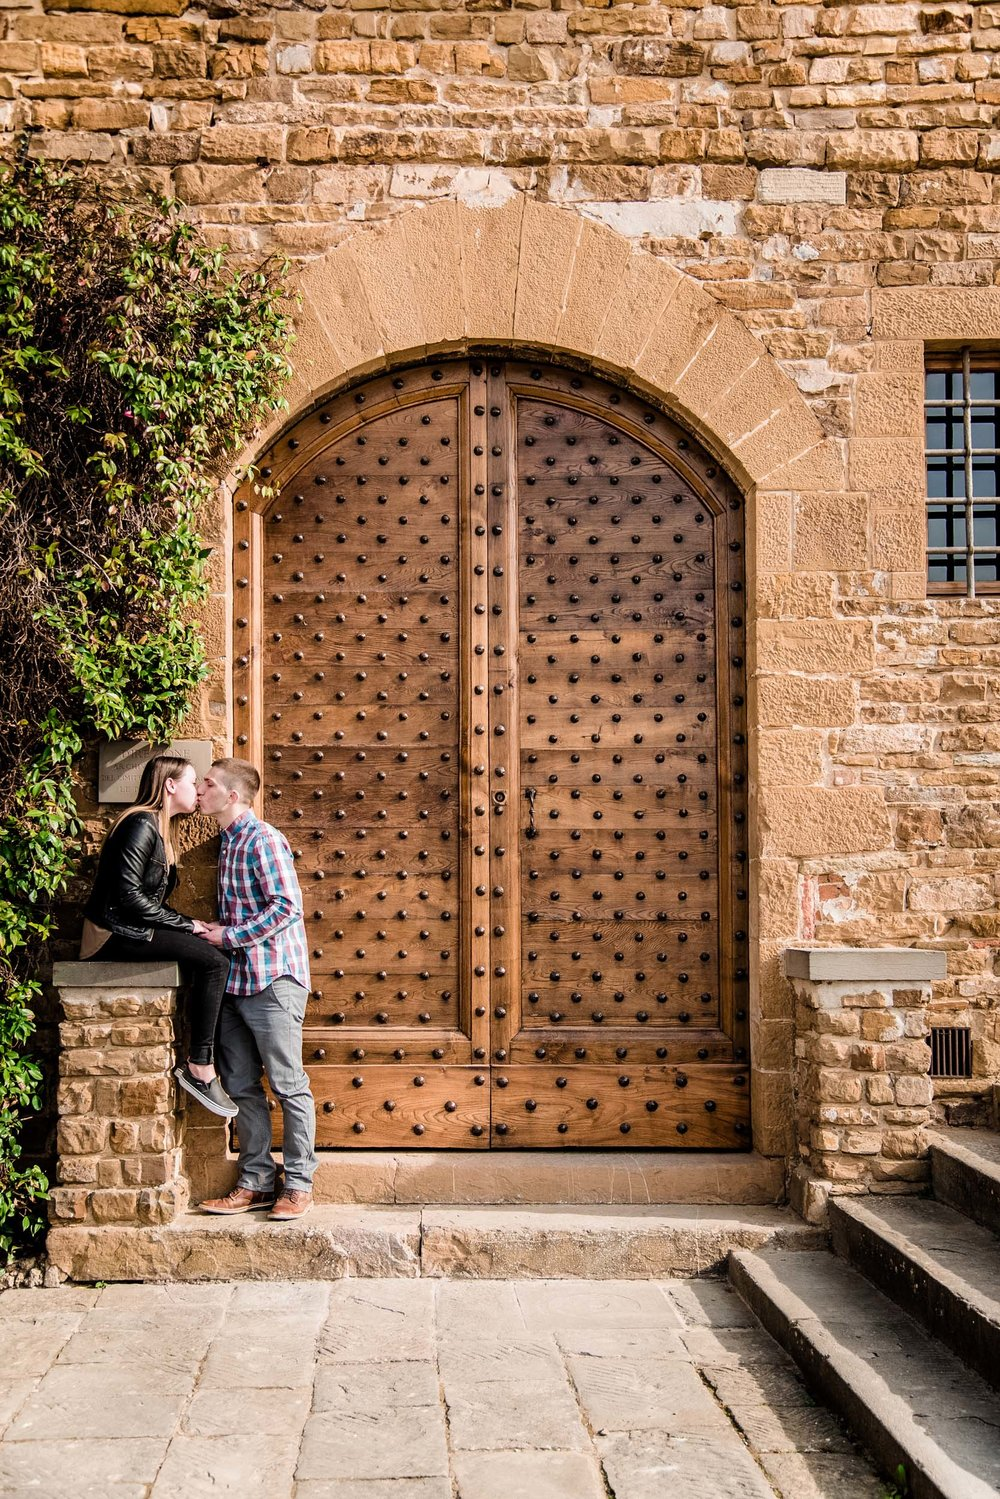 Check out 50 photos that will make you fall in love with Florence on the Flytographer blog! | Travel + Vacation Photographer | Family Vacations | Engagement Proposals | Honeymoons | Anniversary Gifts | Bachelorette Ideas | Solo Traveller Tips |  Flytographer captures your travel memories - everything from surprise proposals, honeymoons, family vacations, and more. So often you are missing out of your own photos! Flytographer solves that problem for you. Our photographers also act as informal tour guides and provide fun local tips to our customers, showing them an area of a city they may not have explored without Flytographer. Book your photographer at 1.888.211.7178 or visit our website at www.flytographer.com/book